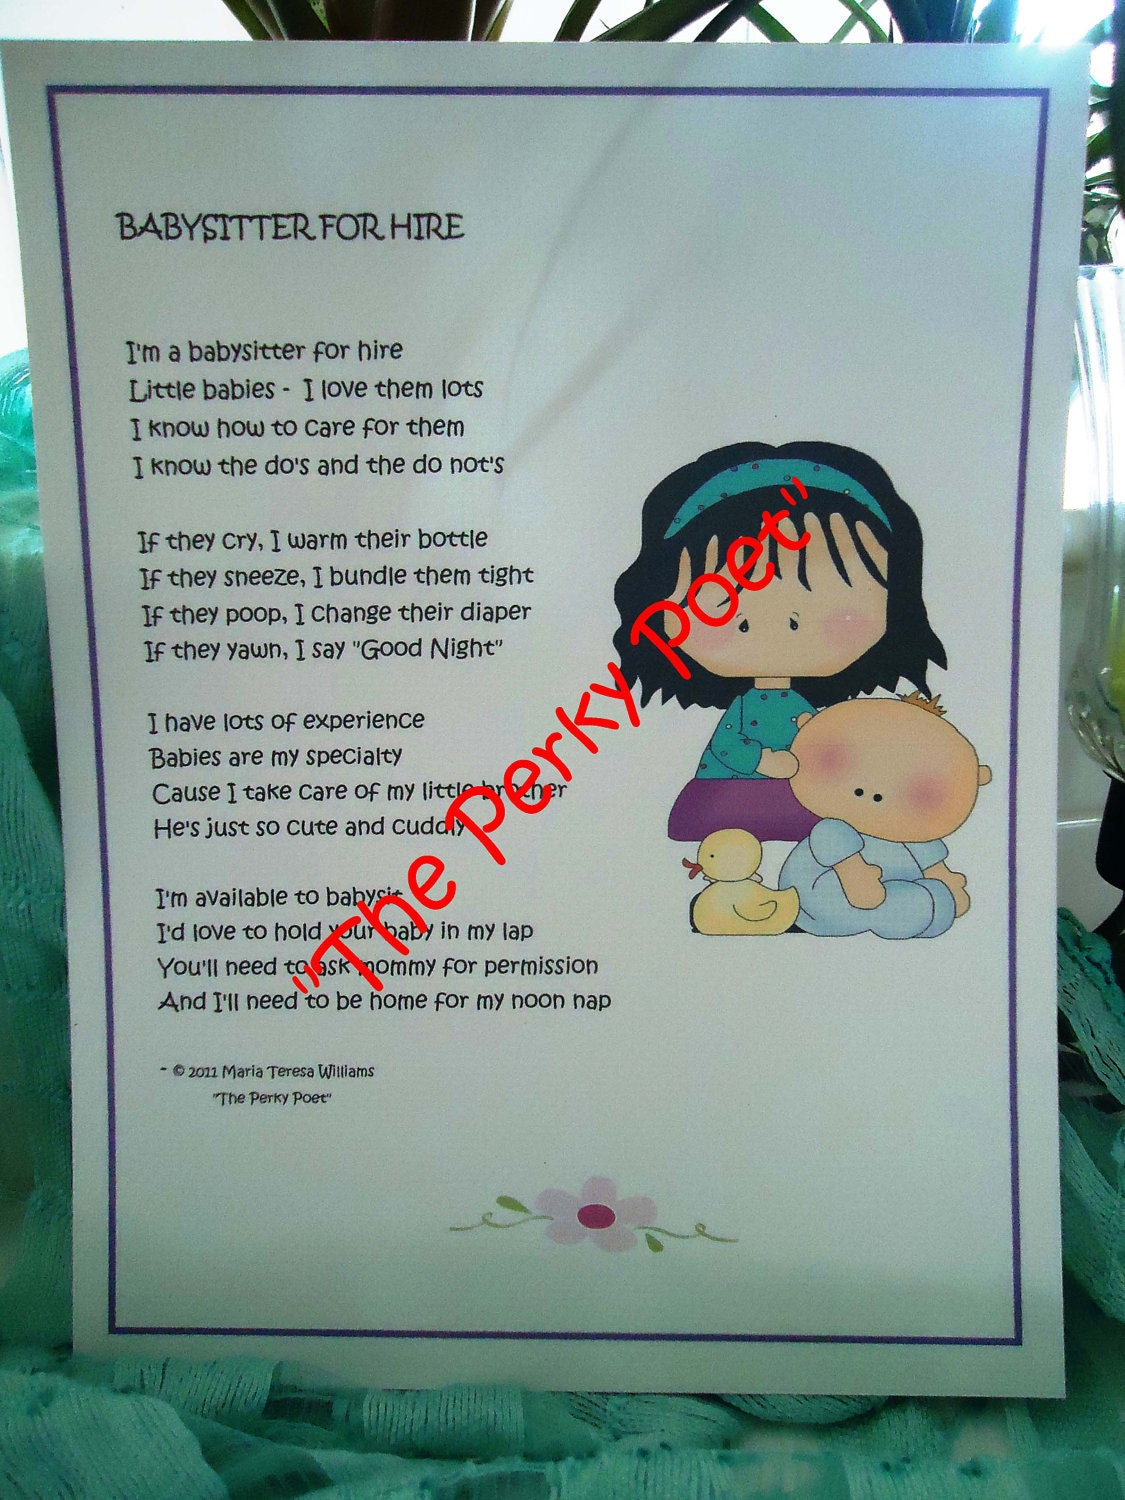 babysitter for hire poem cute funny by the perky 🔎zoom